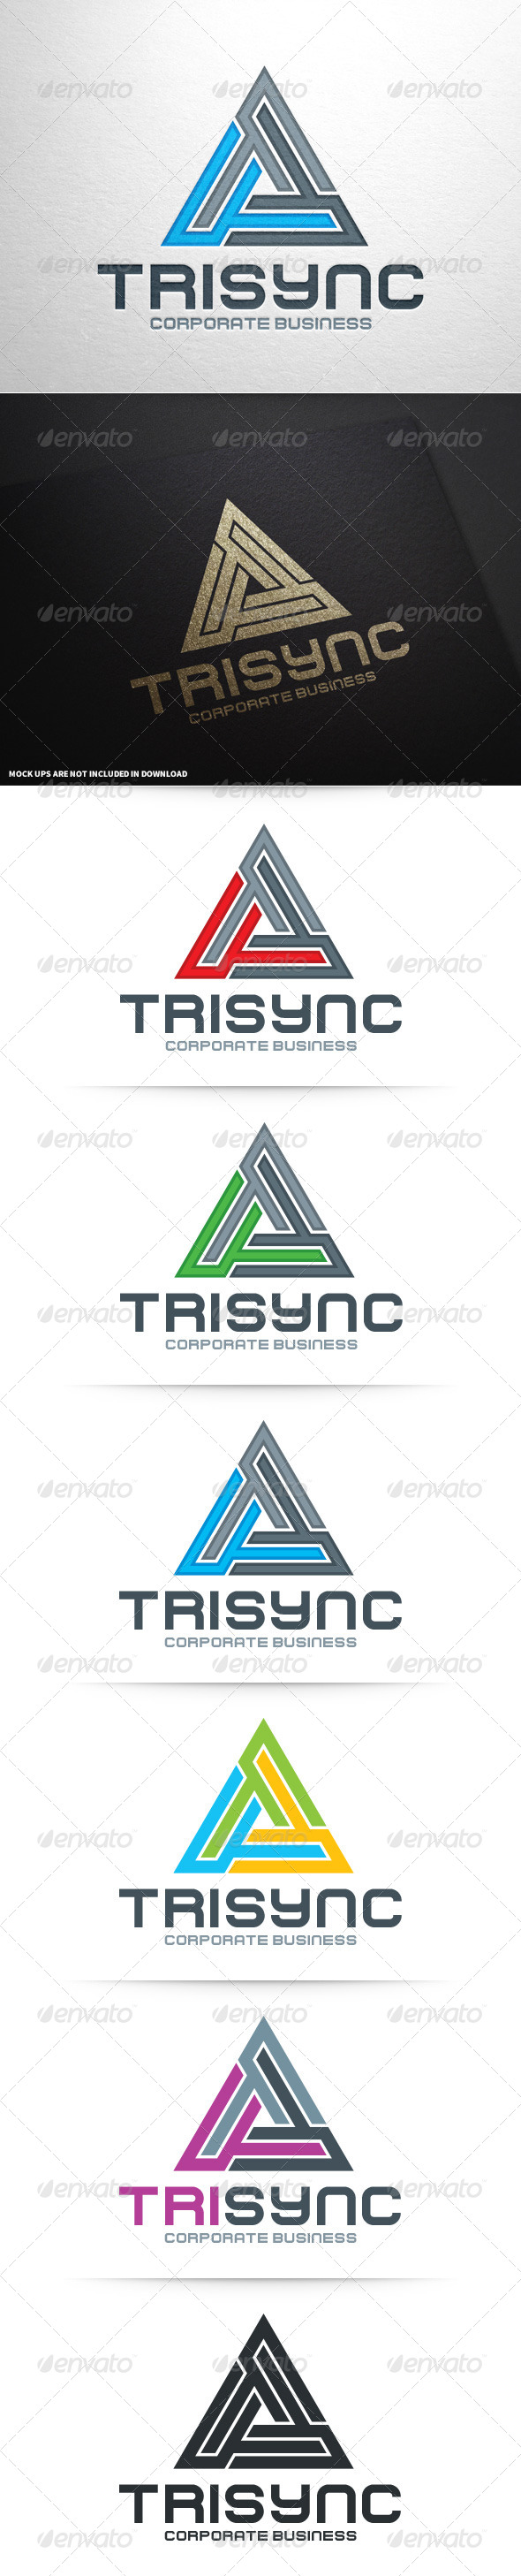 GraphicRiver Trisync Logo Template 8778083